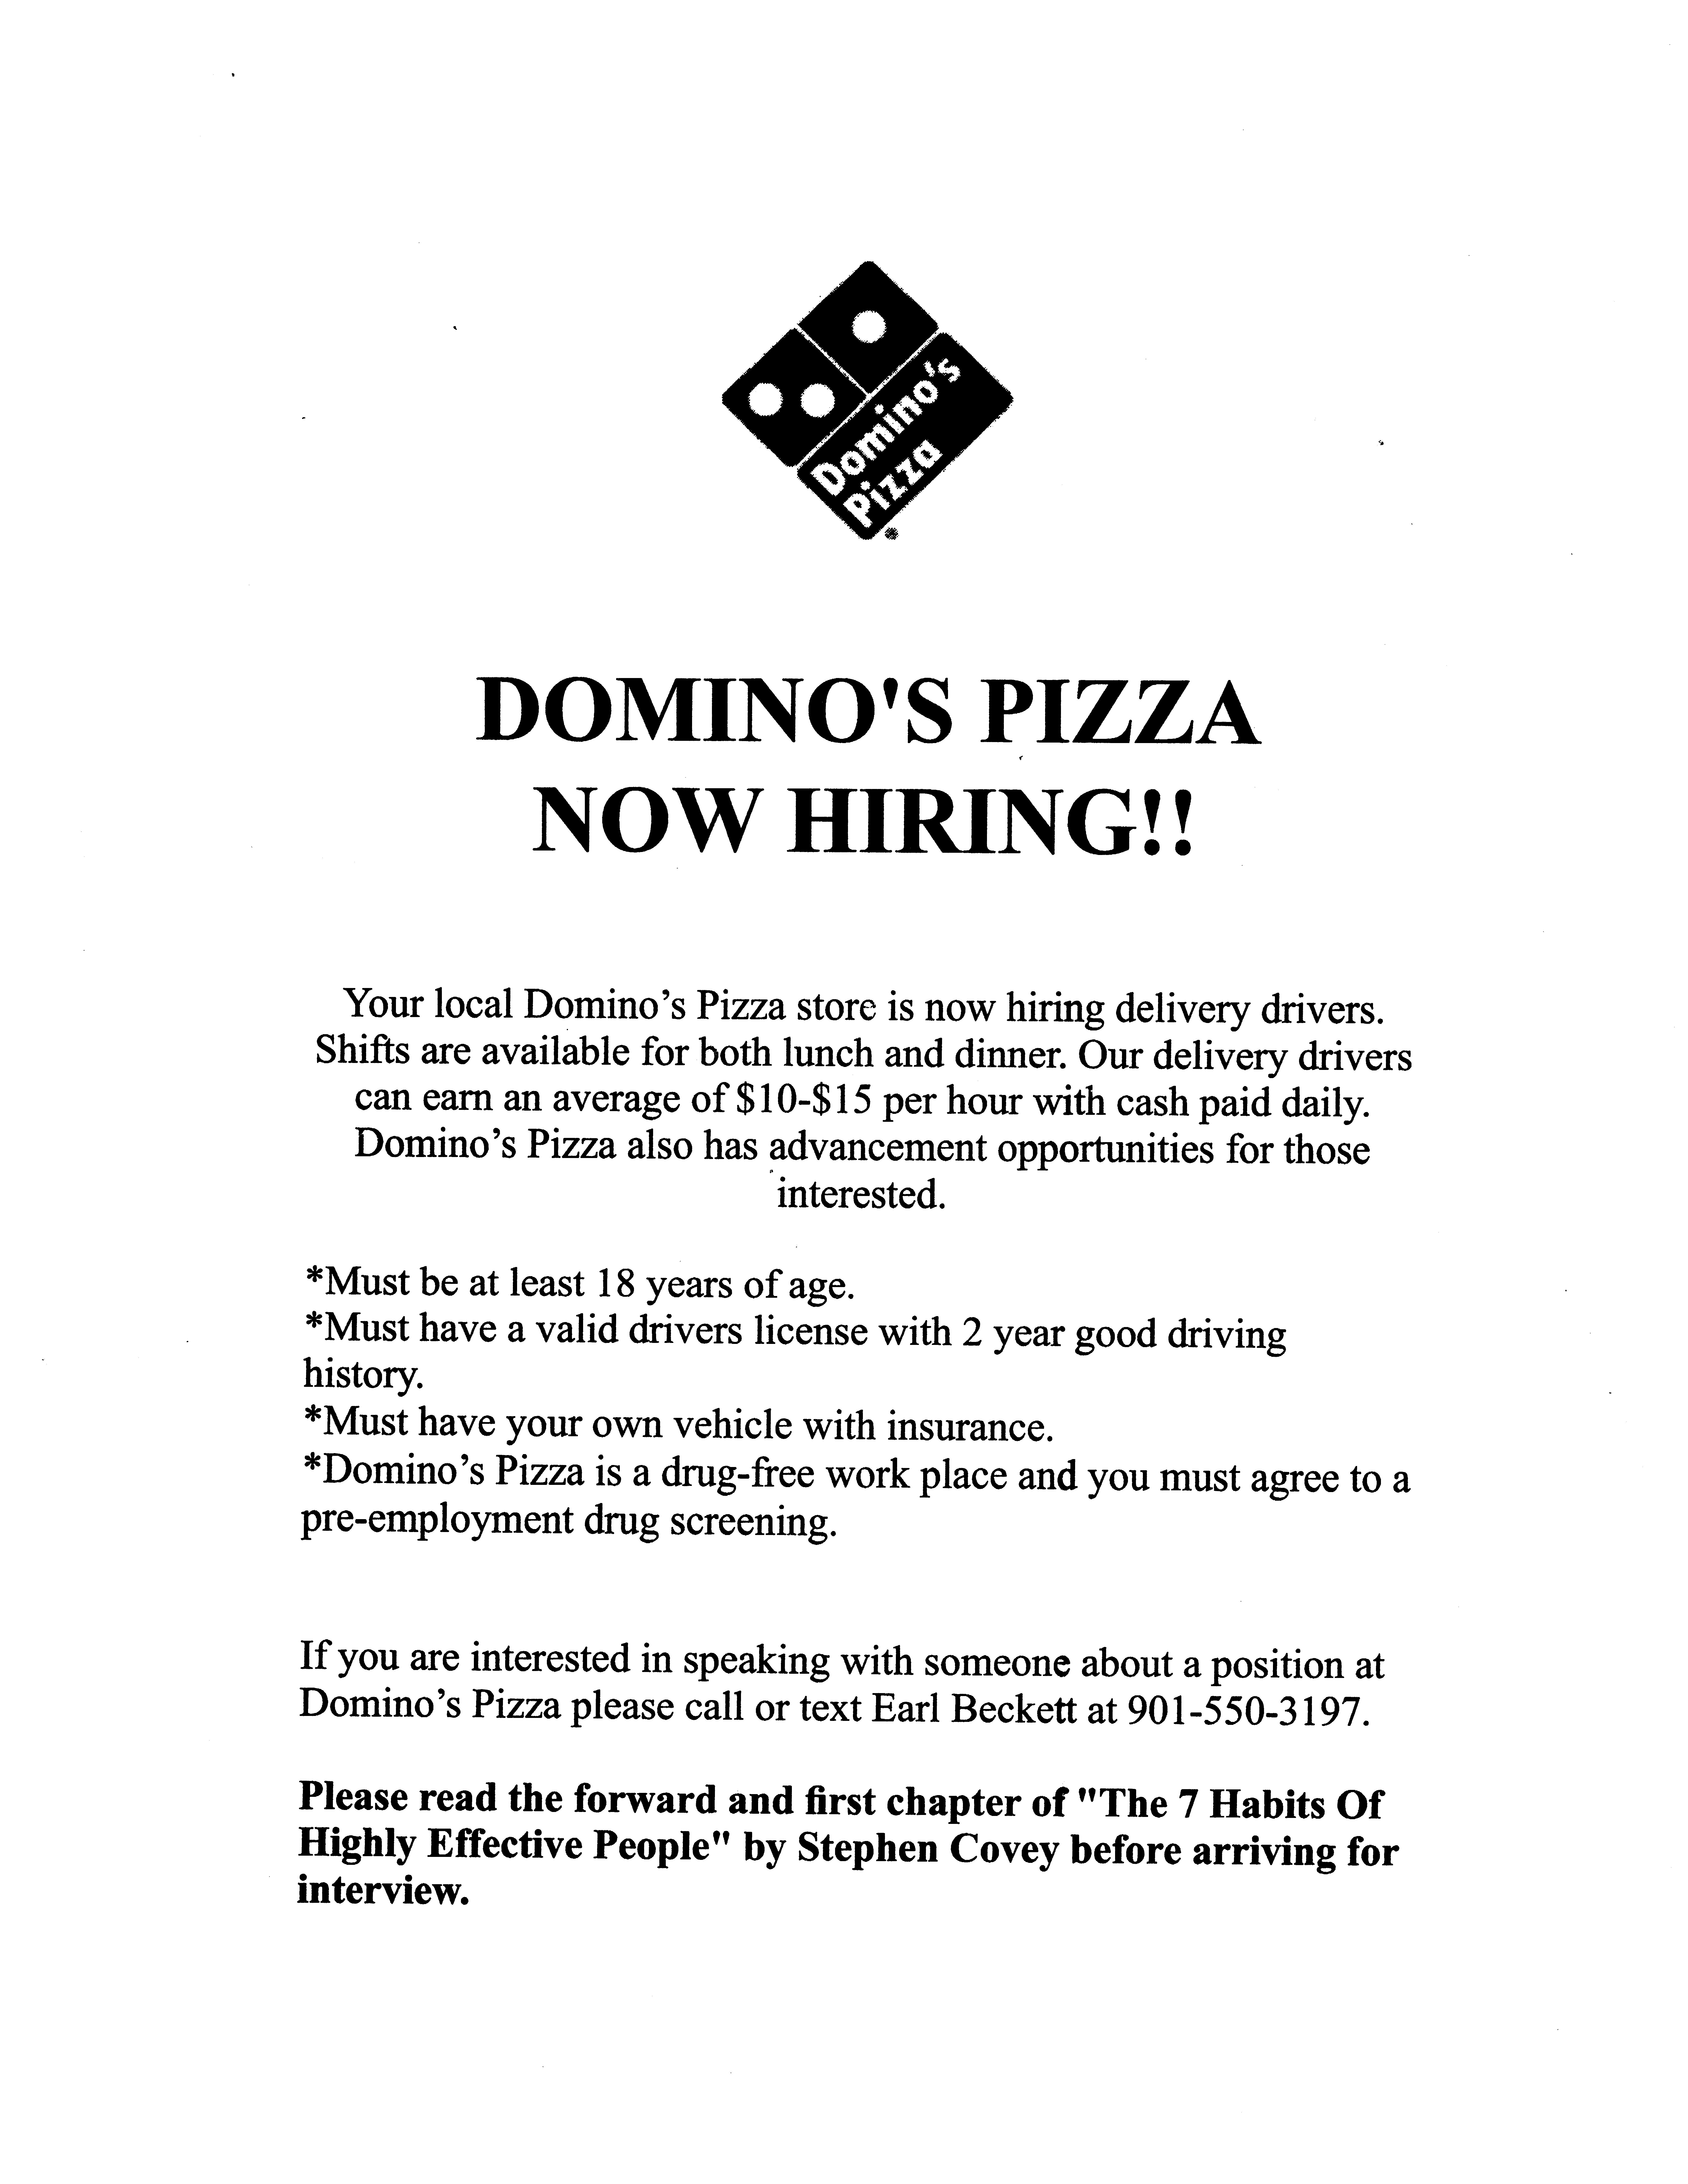 domino pizza hiring delivery drivers job career news dominos driver description for Resume Dominos Delivery Driver Job Description For Resume